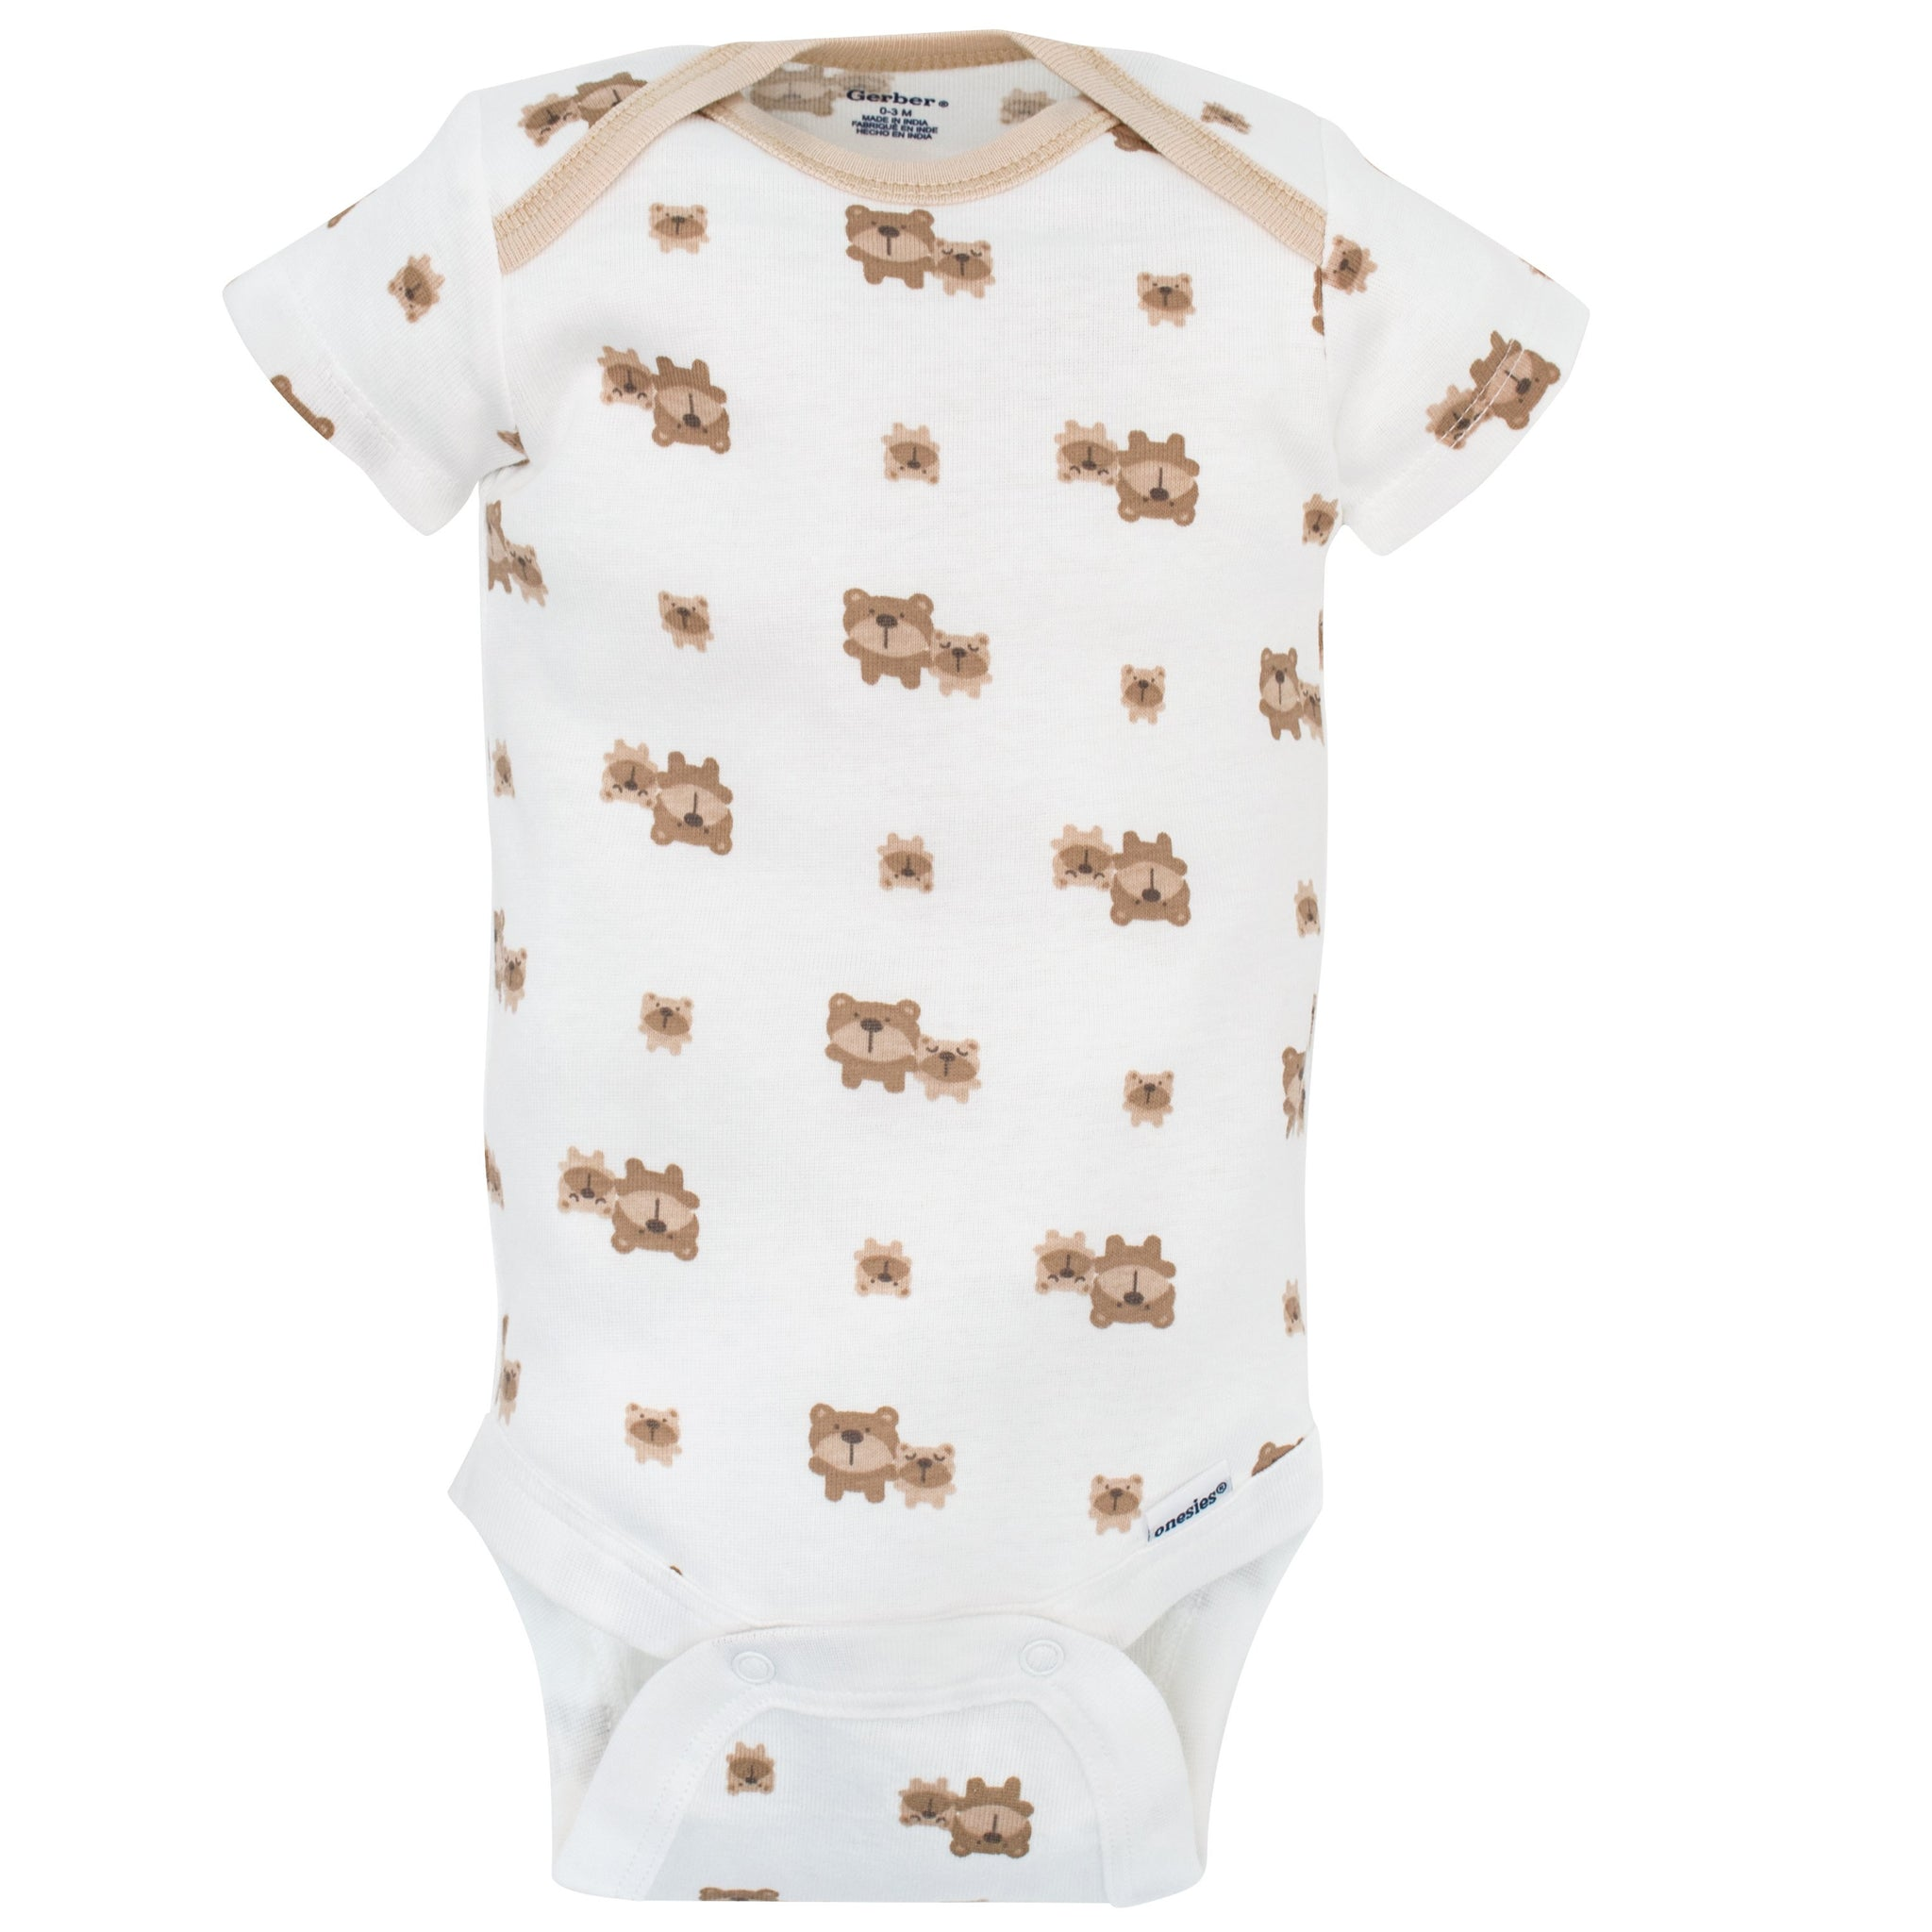 5-Pack Neutral Brown Bear Variety Onesies Bodysuits